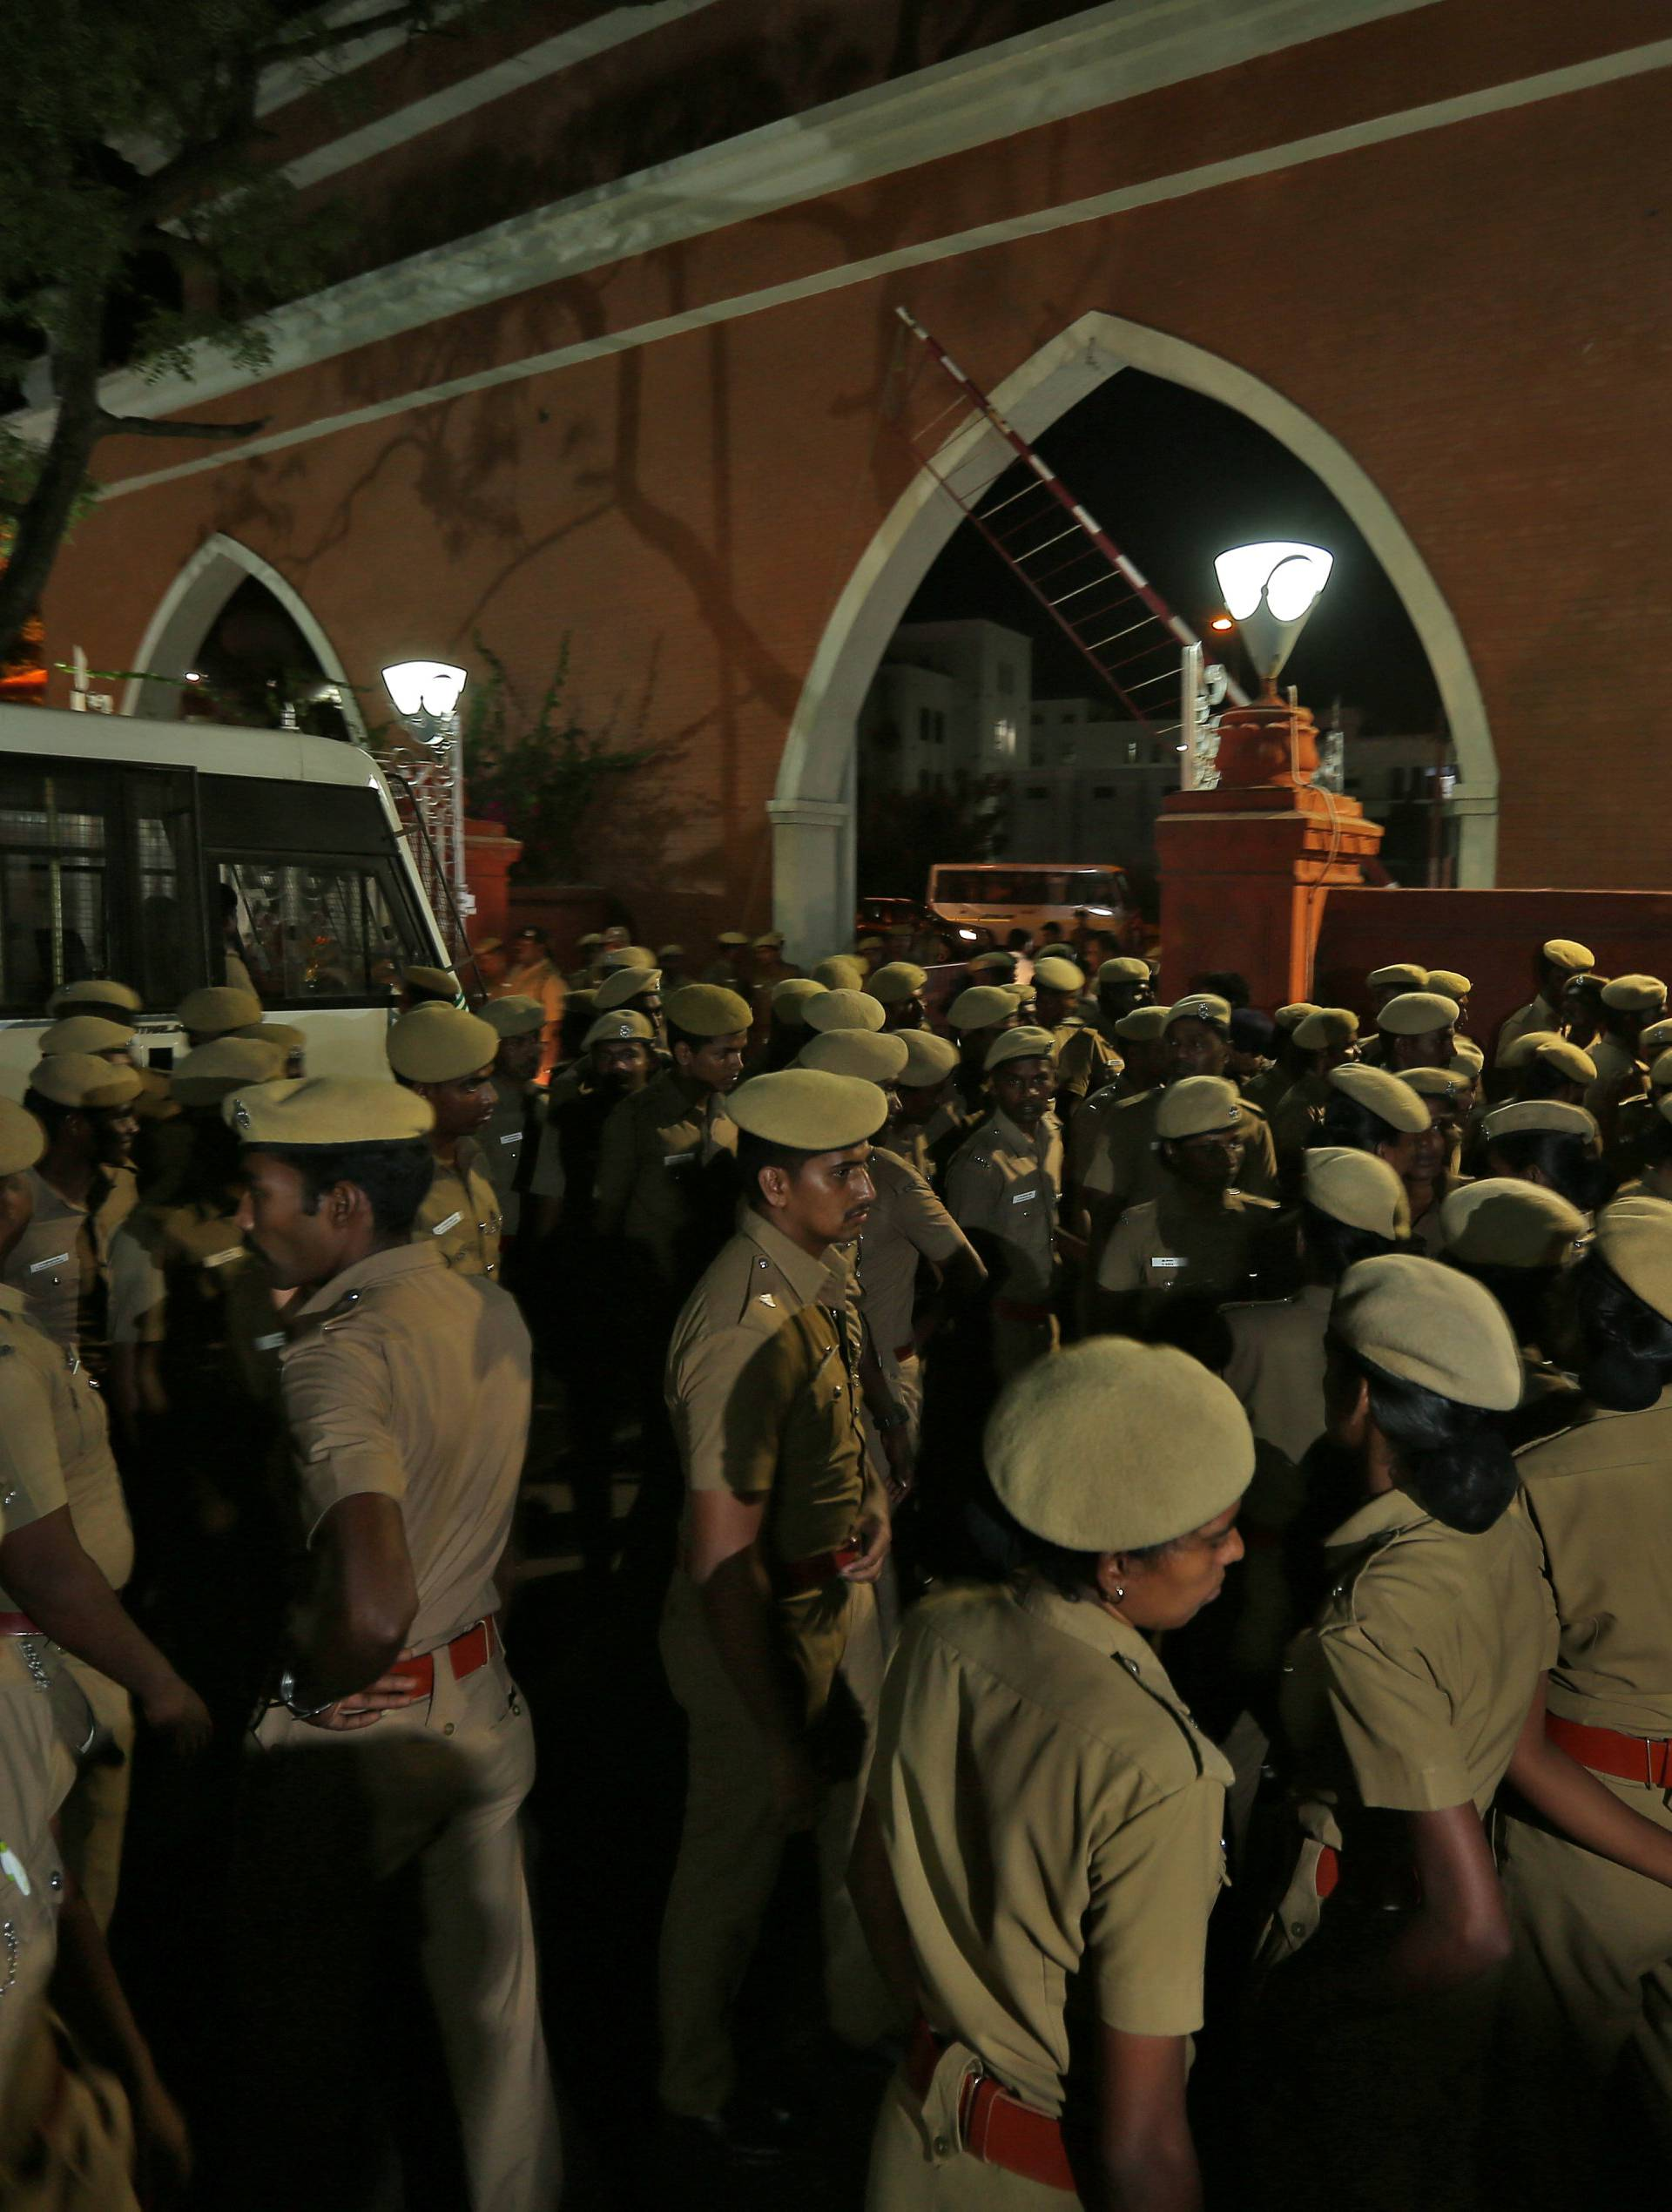 Police stand guard inside the high court premises in Chennai